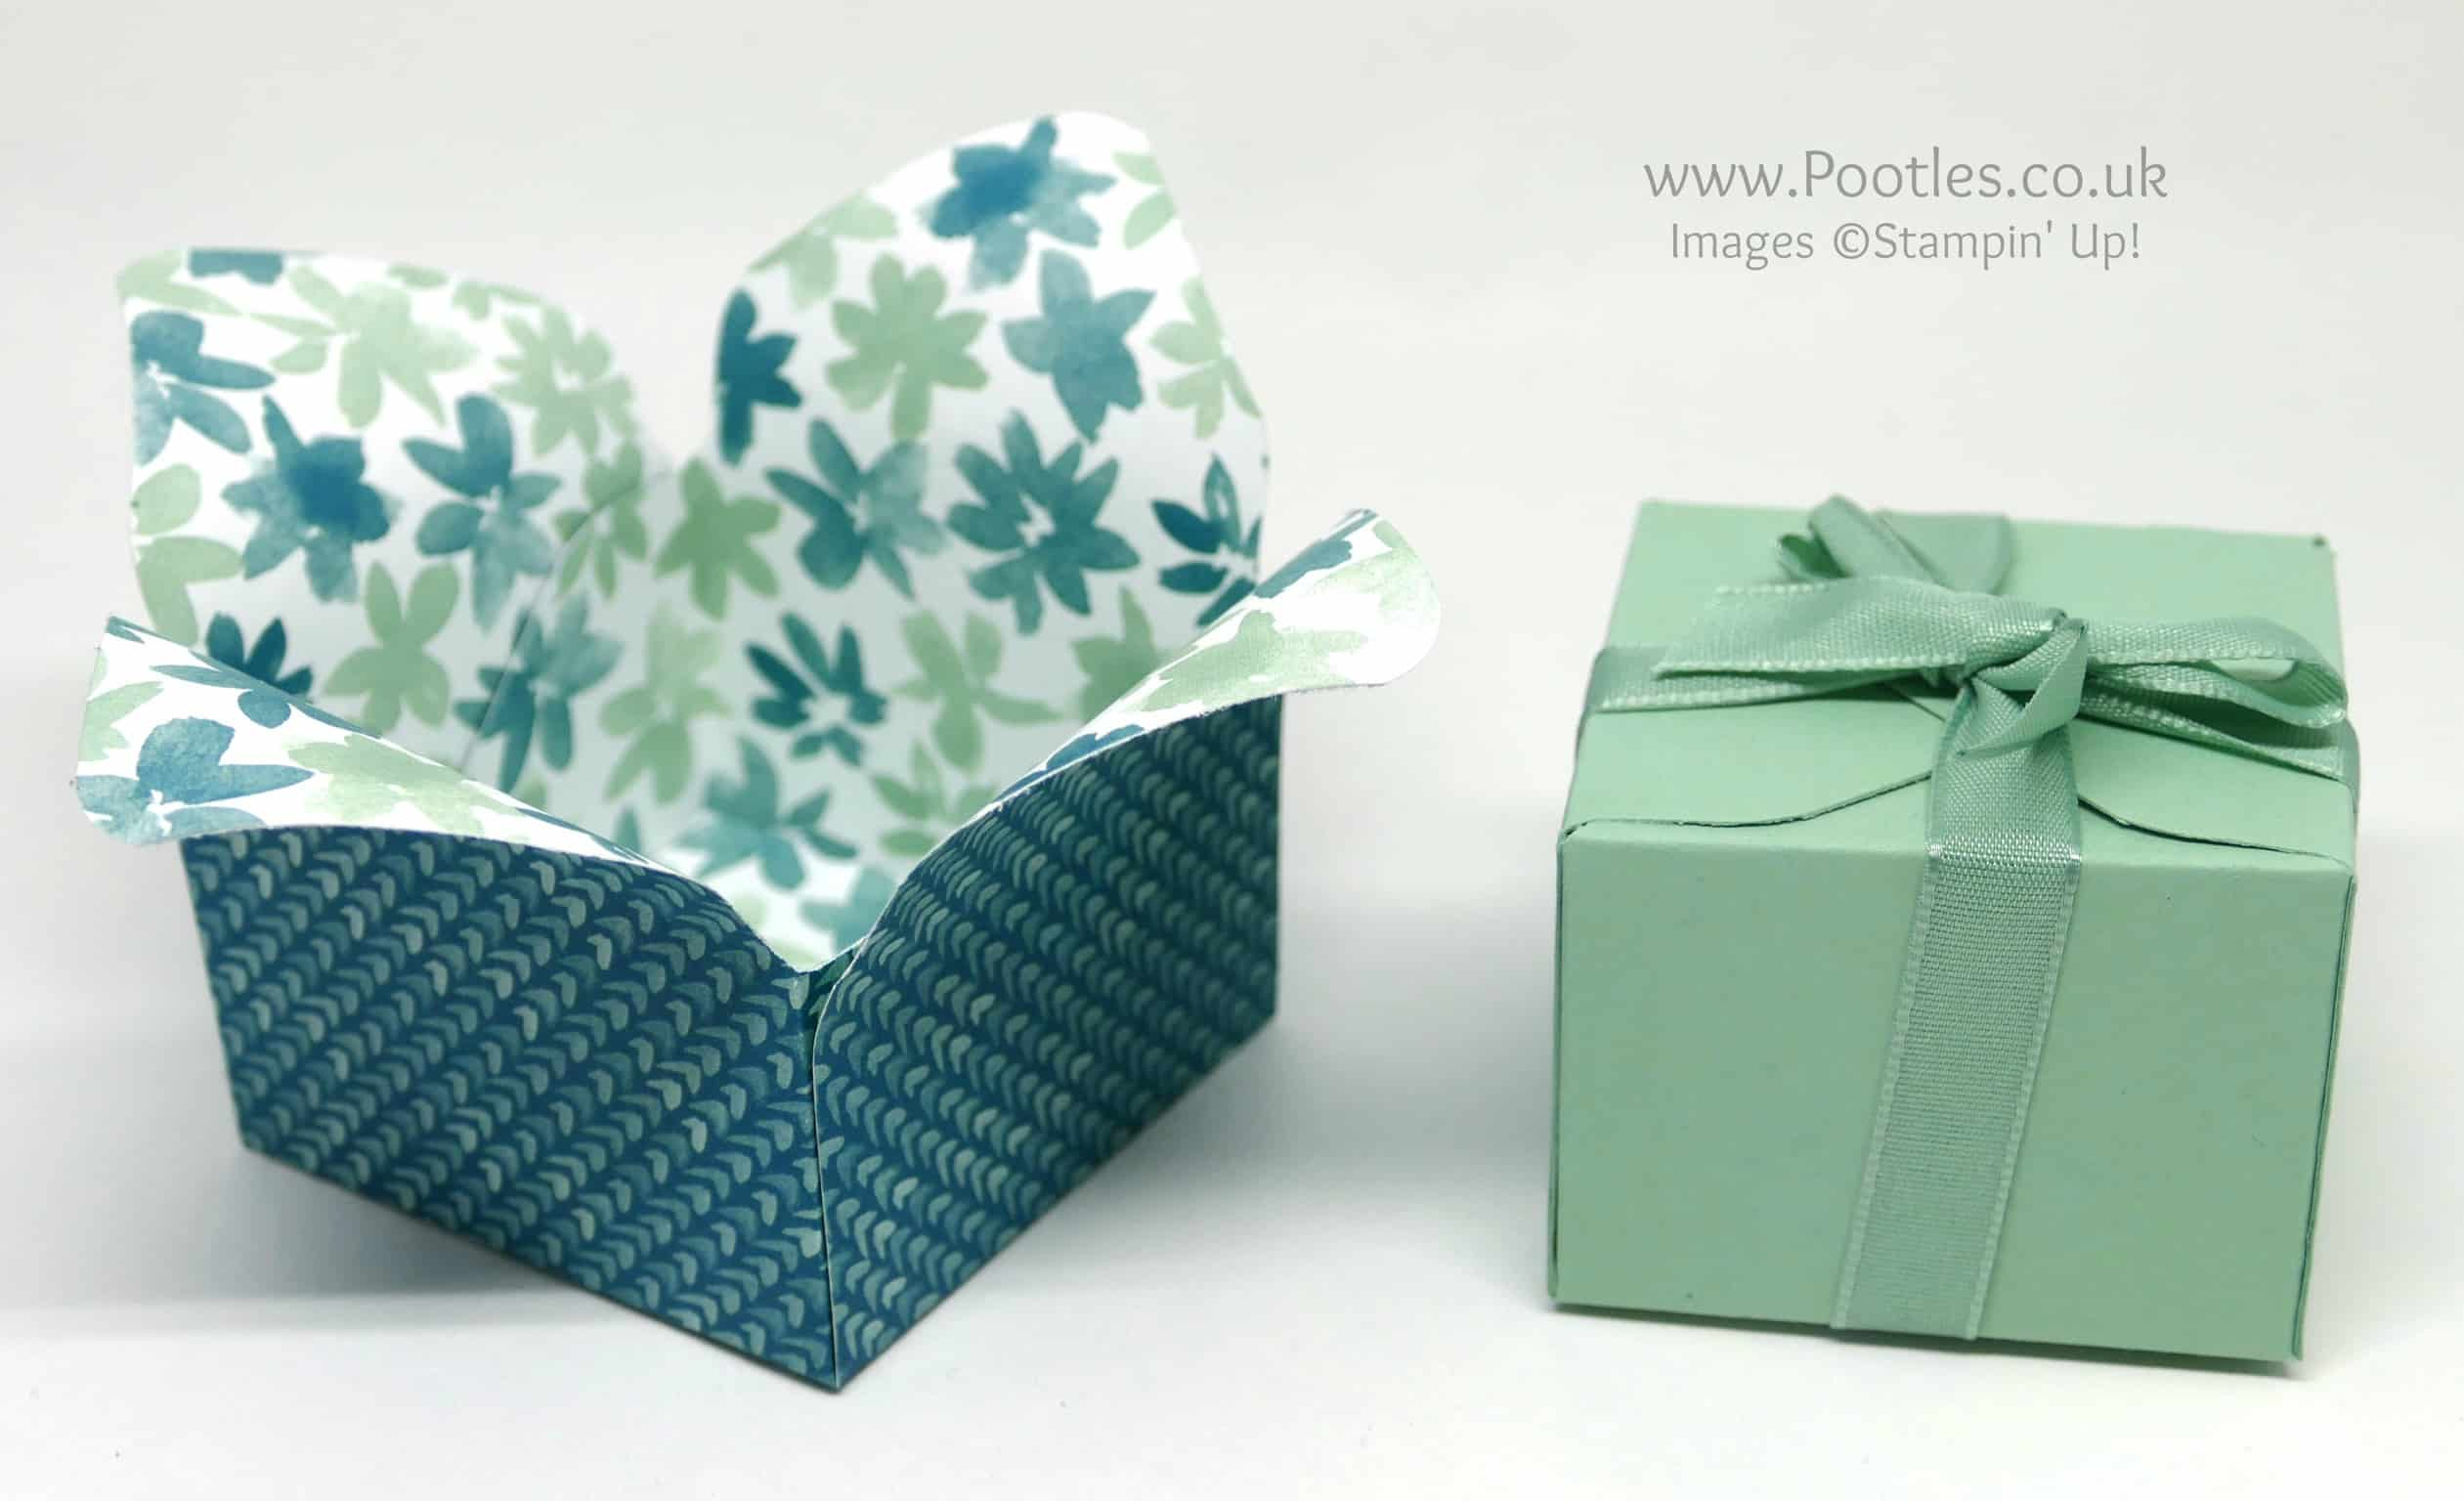 Pootles' Way Back Wednesday Envelope Punch Board Box in a Flower